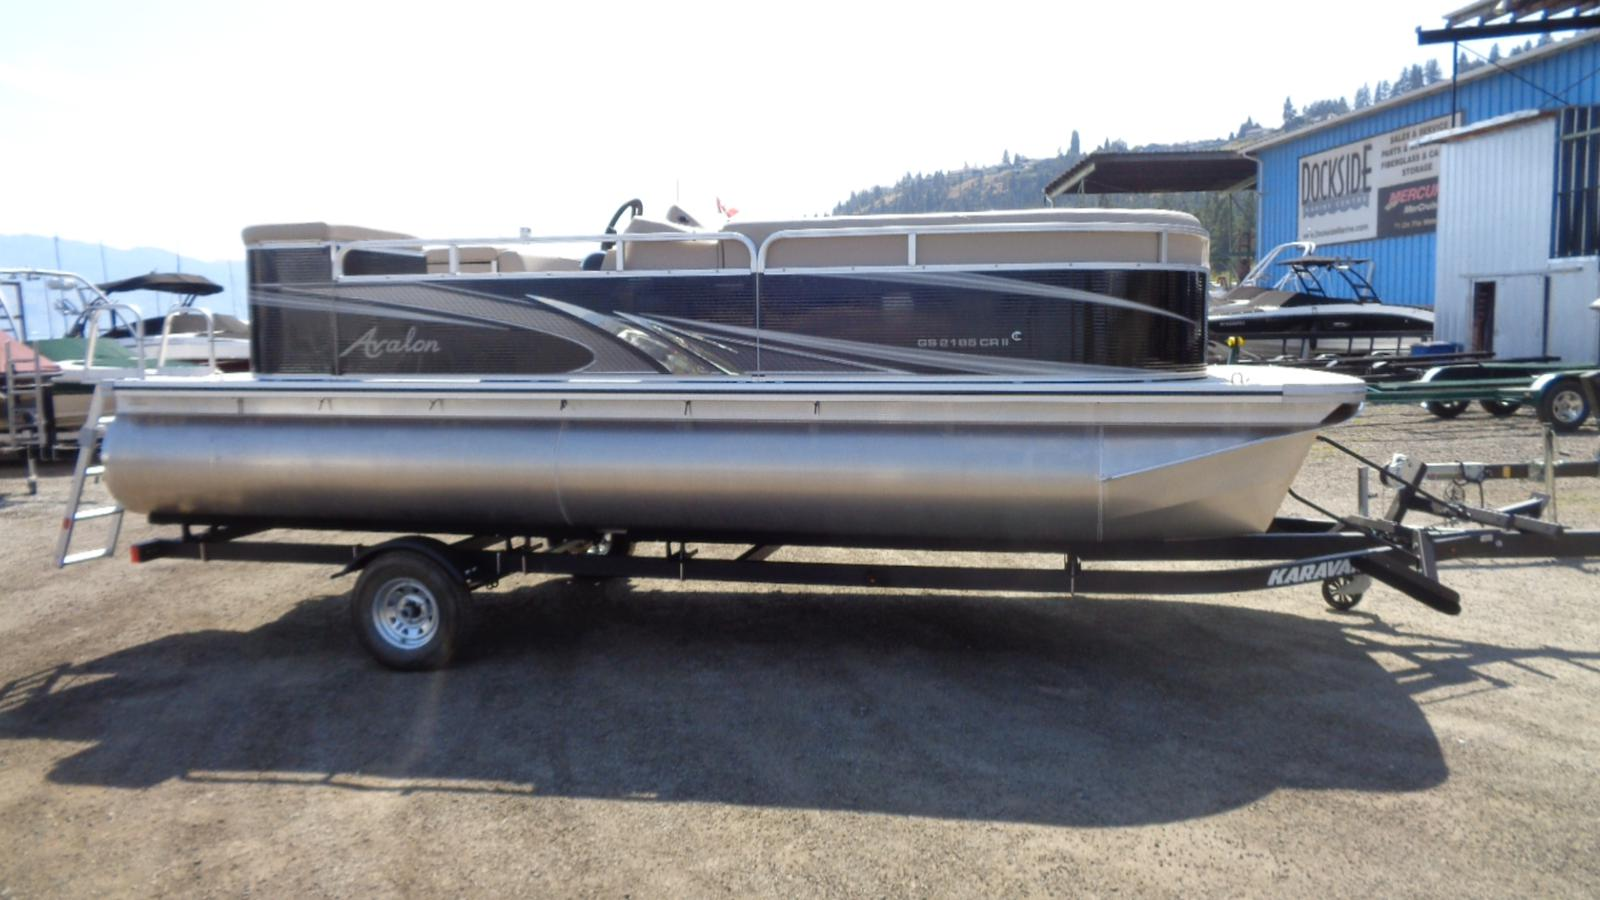 For Sale: 2018 Avalon 21 Gs Cruise 22ft<br/>Dockside Marine Centre, LTD.